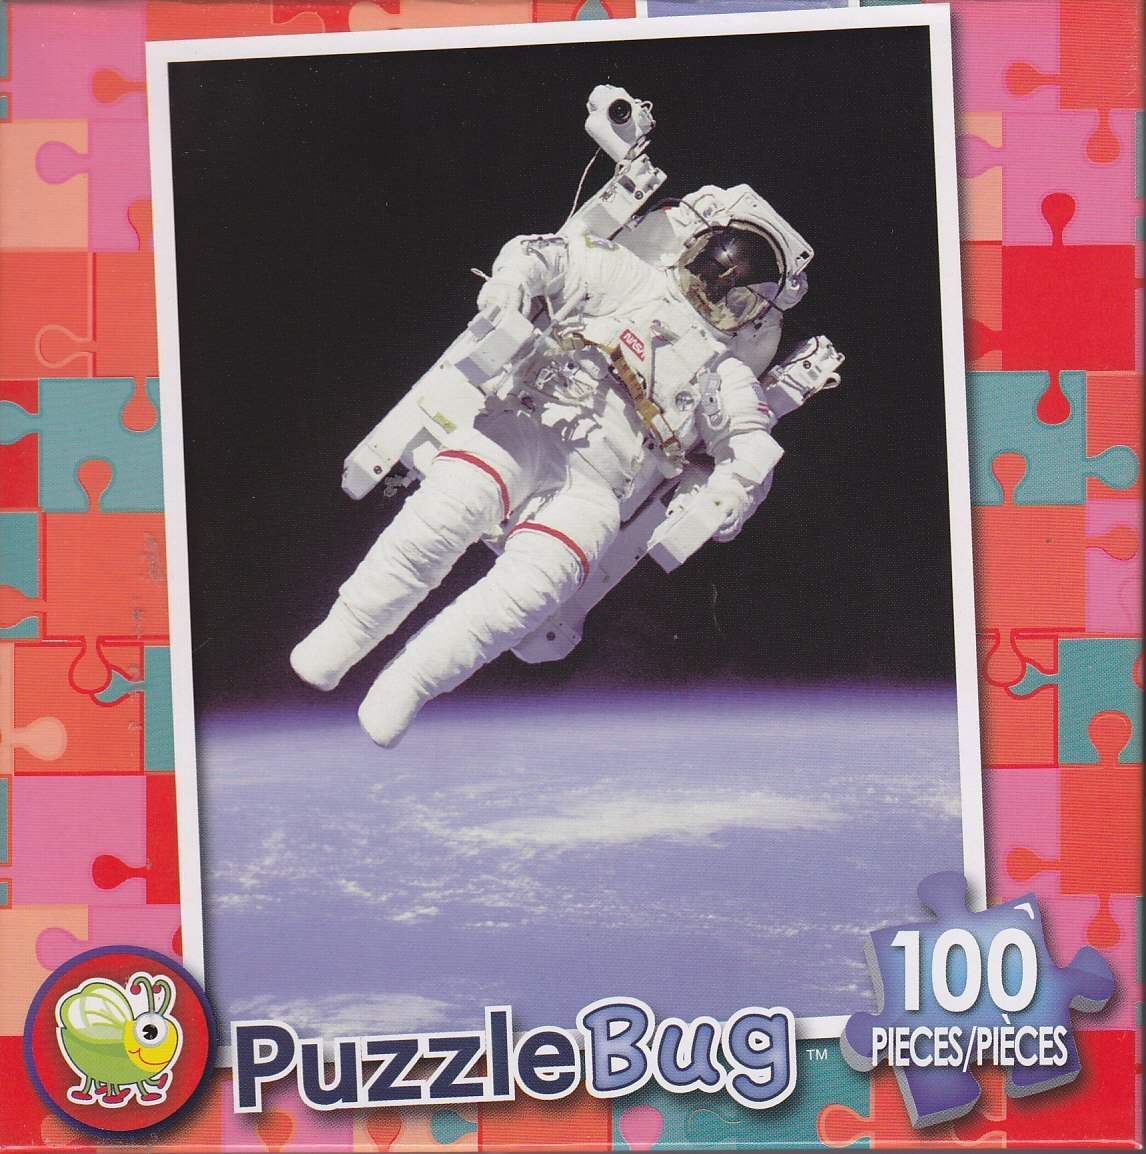 Puzzlebug 100 Piece Puzzle ~ Astronaut in Space.